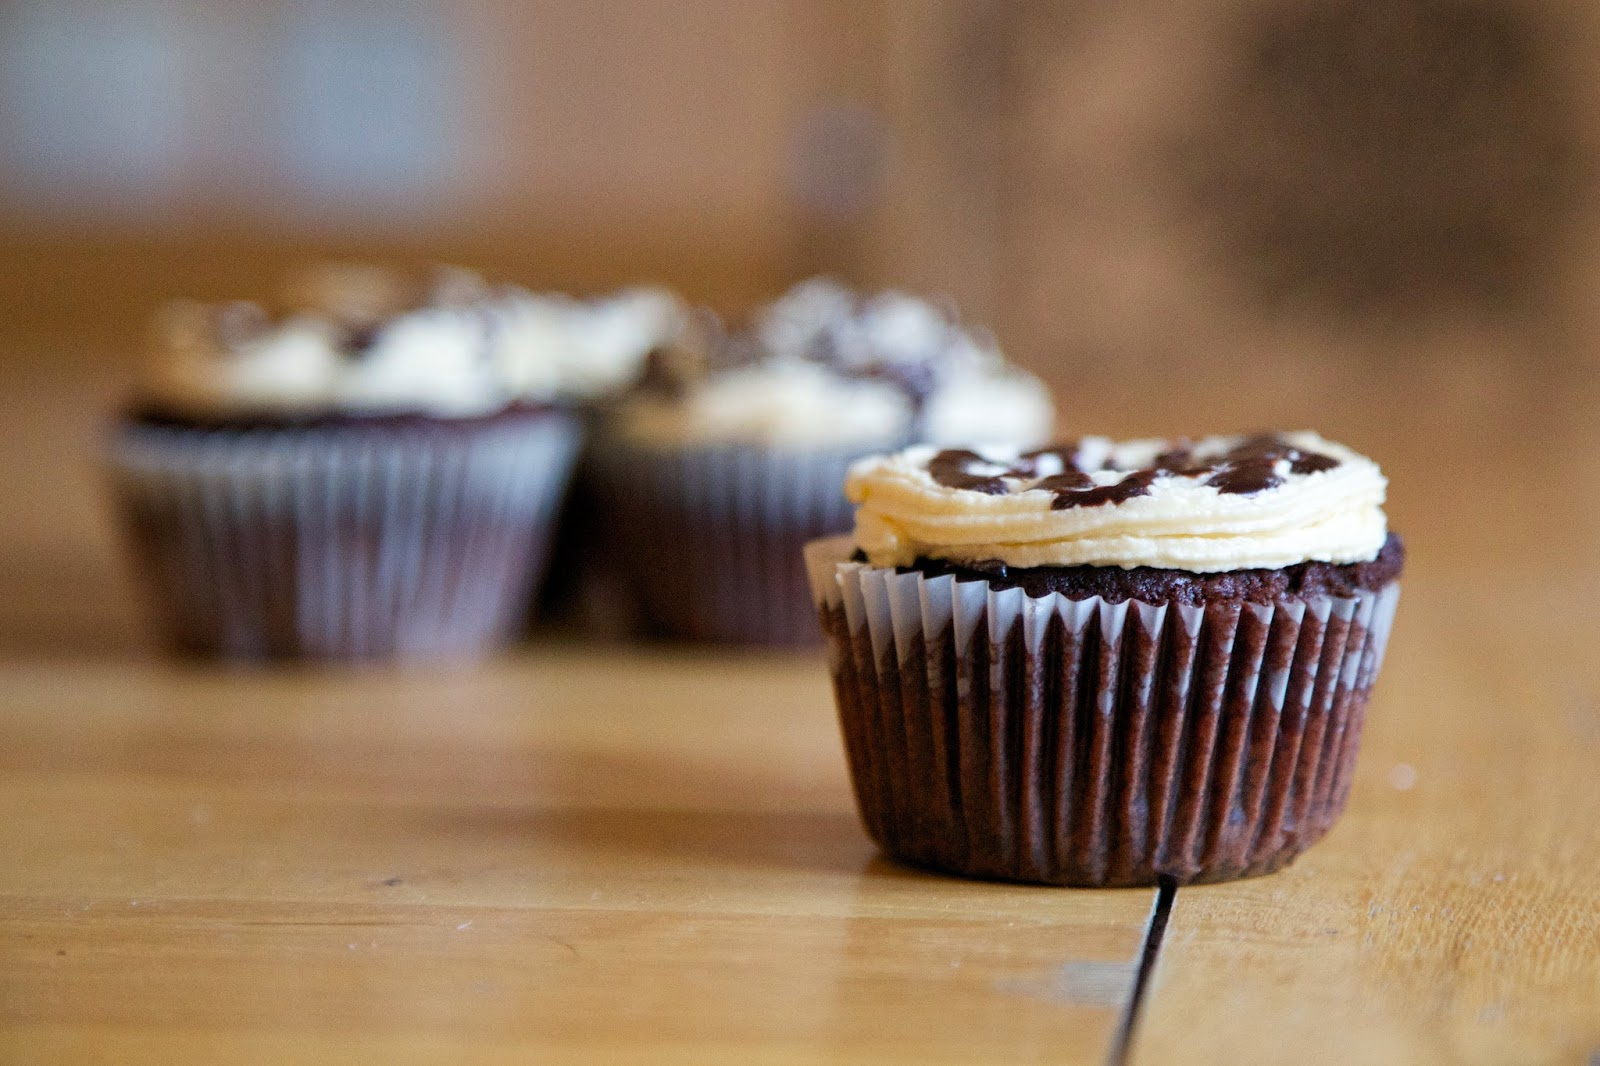 Chocolate cupcakes with baileys frosting and chocolate sauce